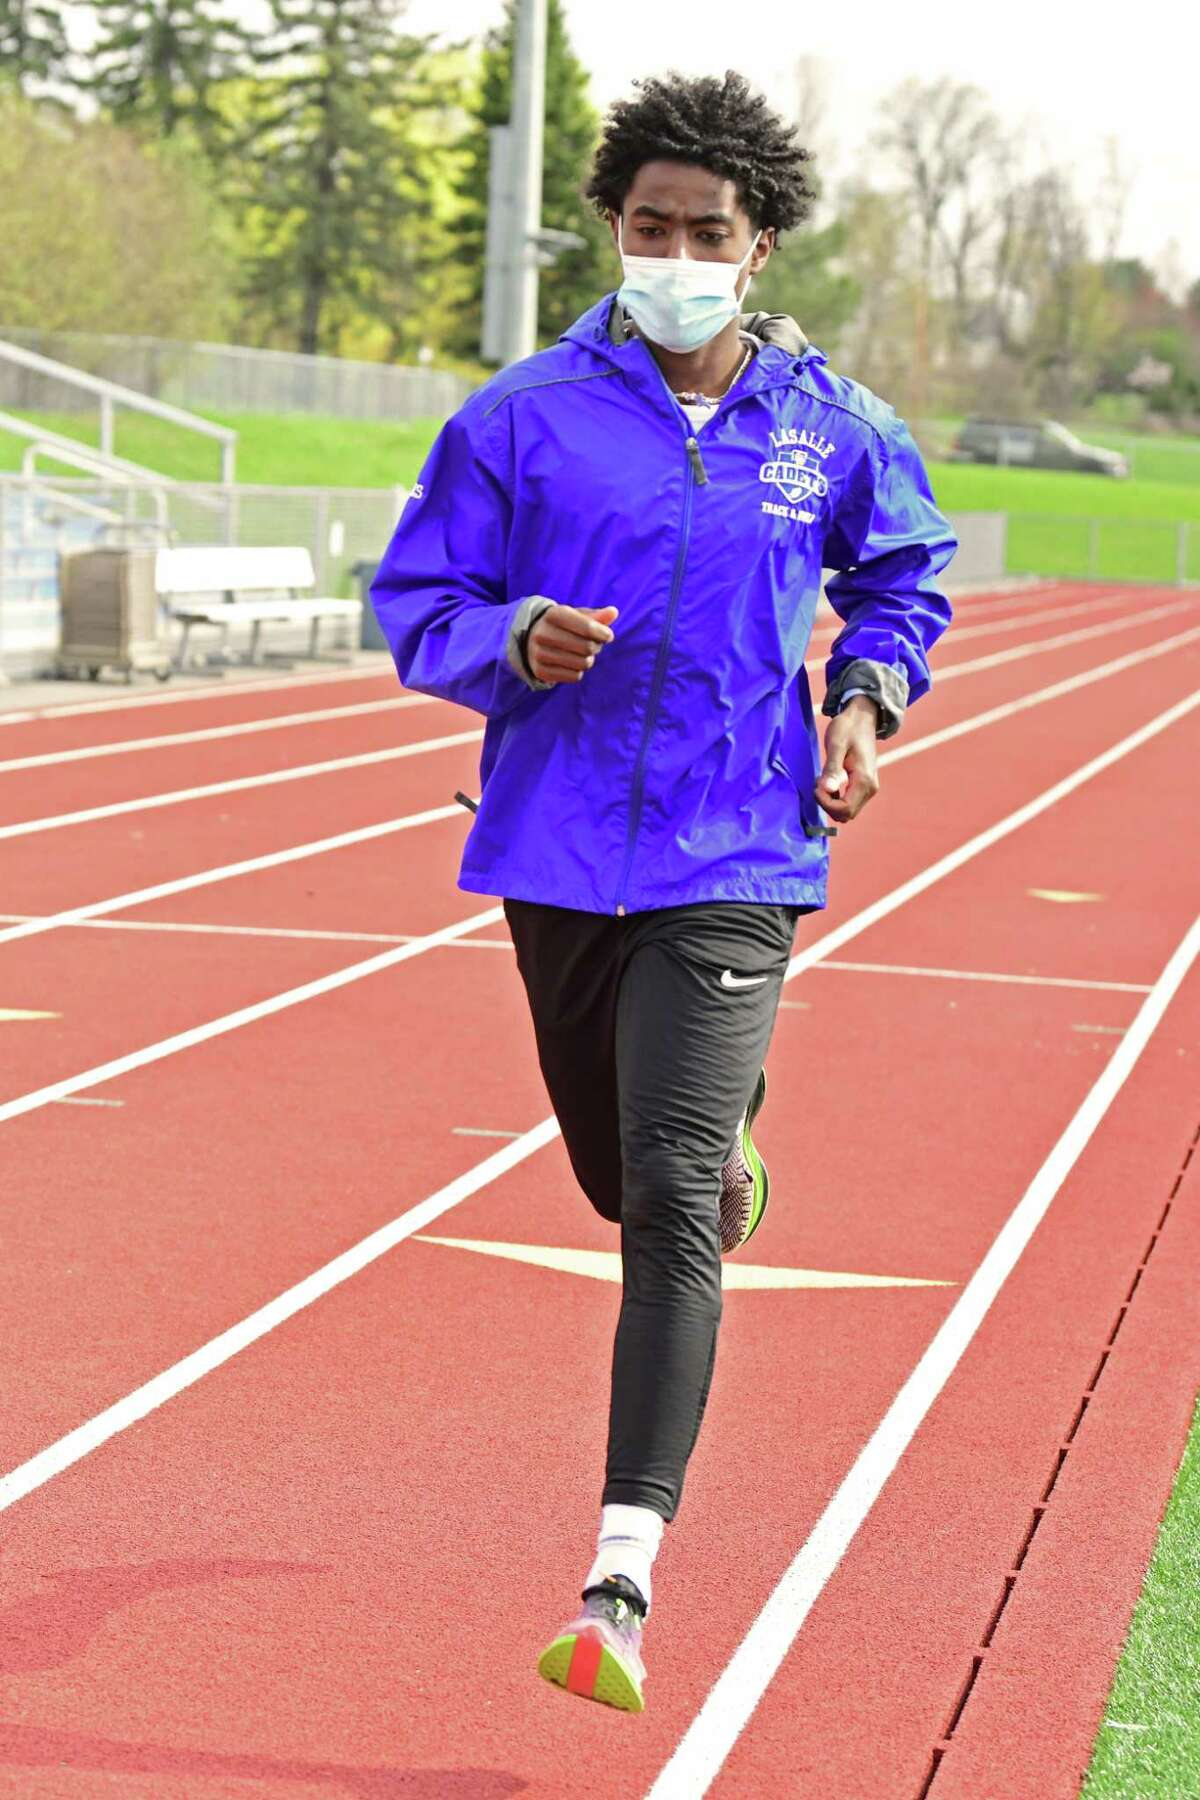 La Salle's Gitch Hayes said the 1,600 is his best event. He led Section II in the event, running 4:17.95.